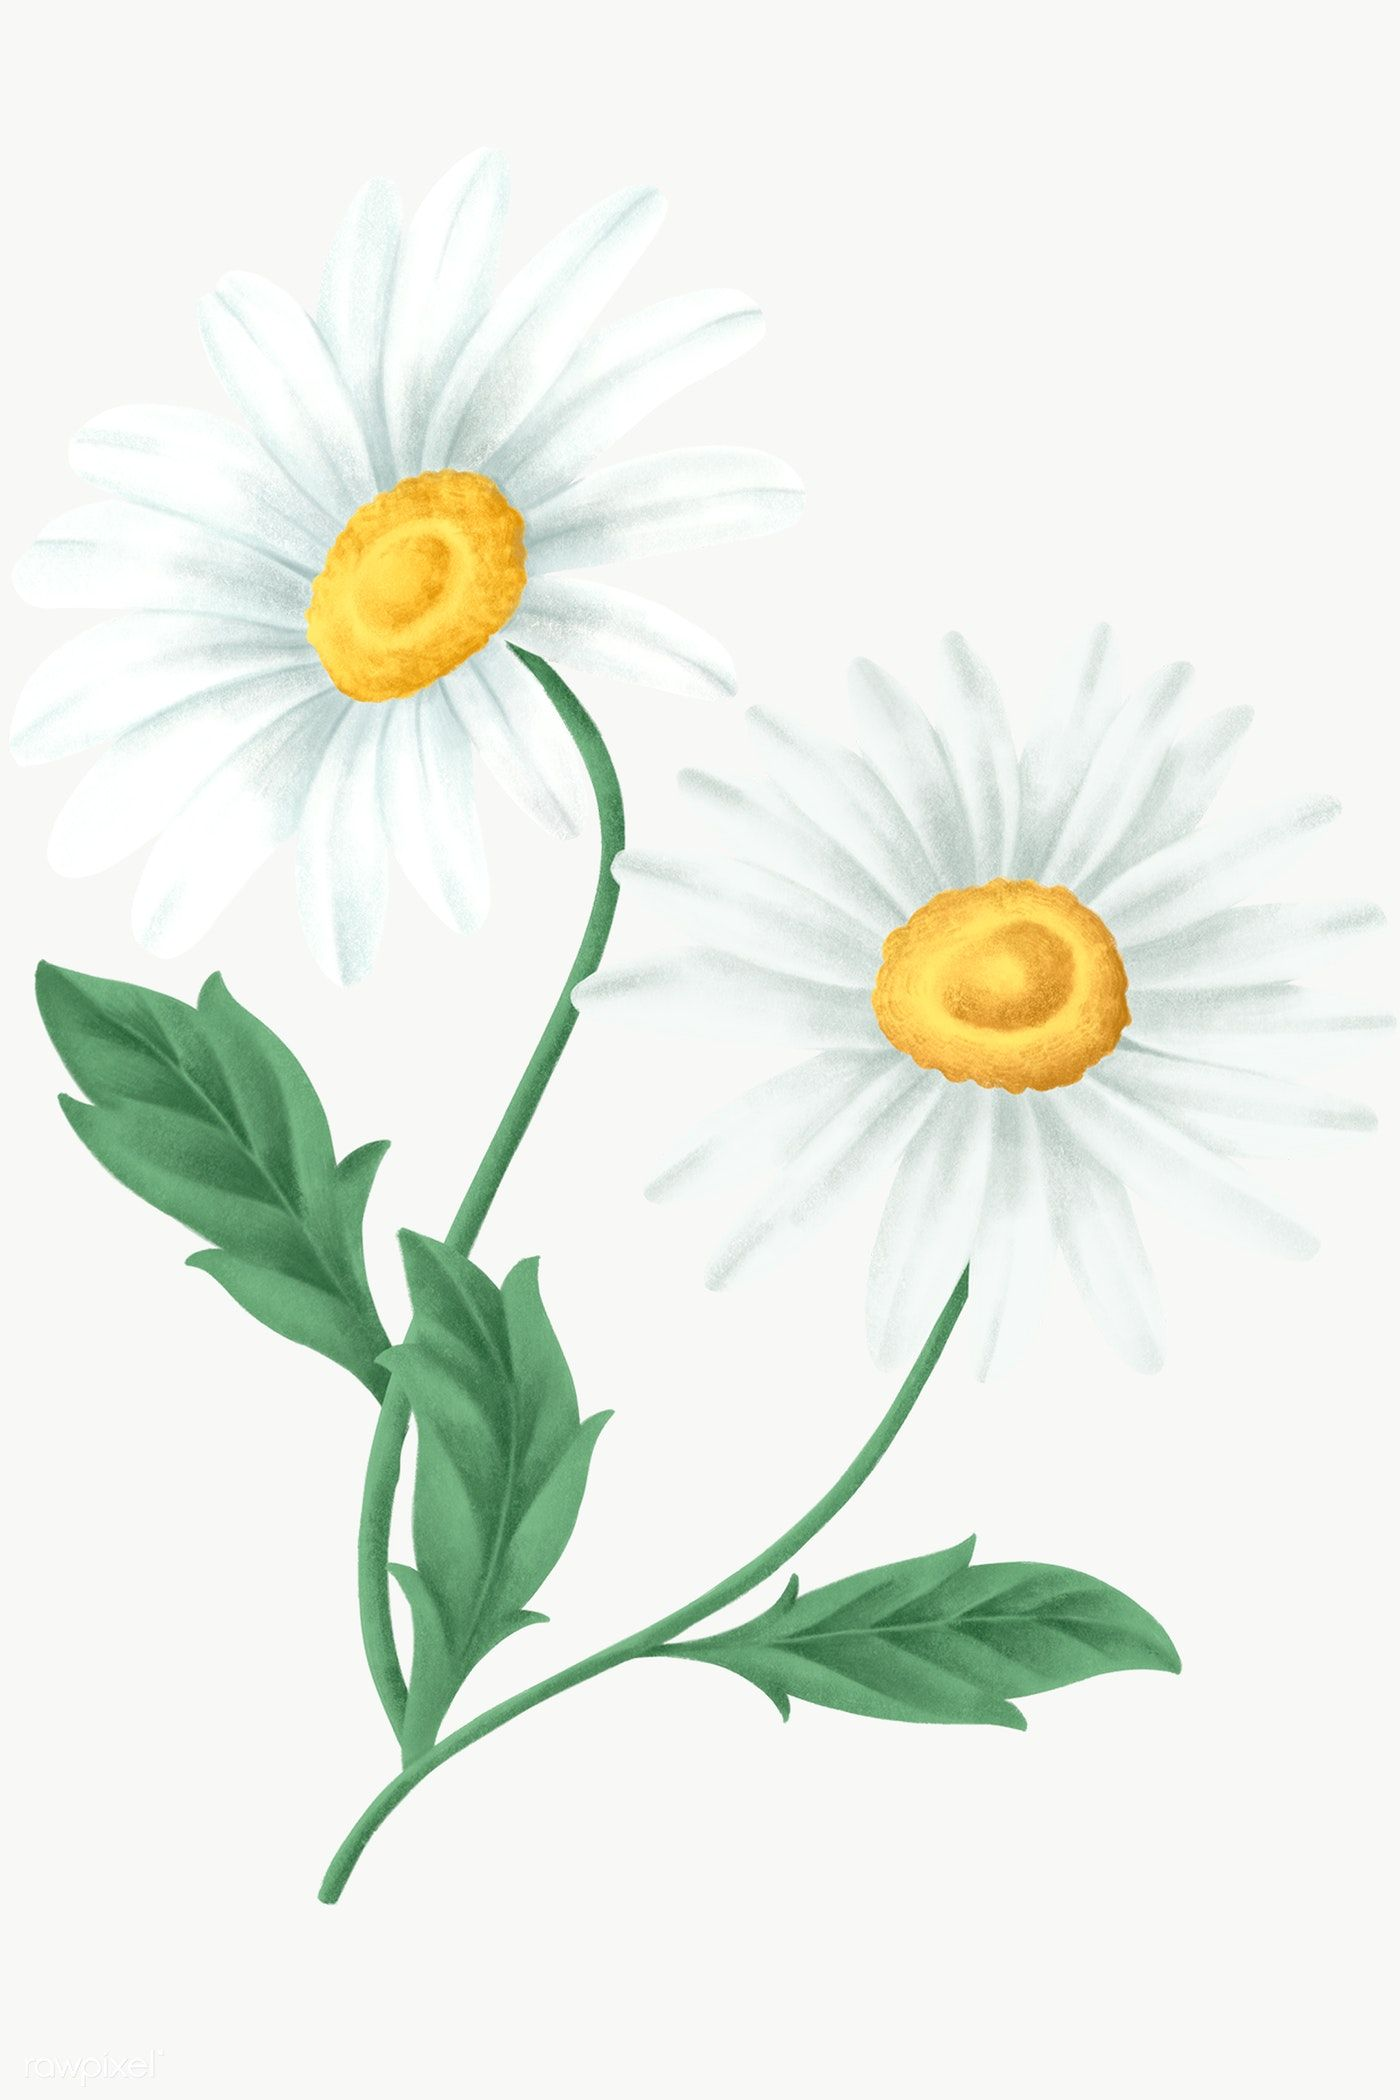 Vintage Daisy Flower Transparent Png Free Image By Rawpixel Com Noon